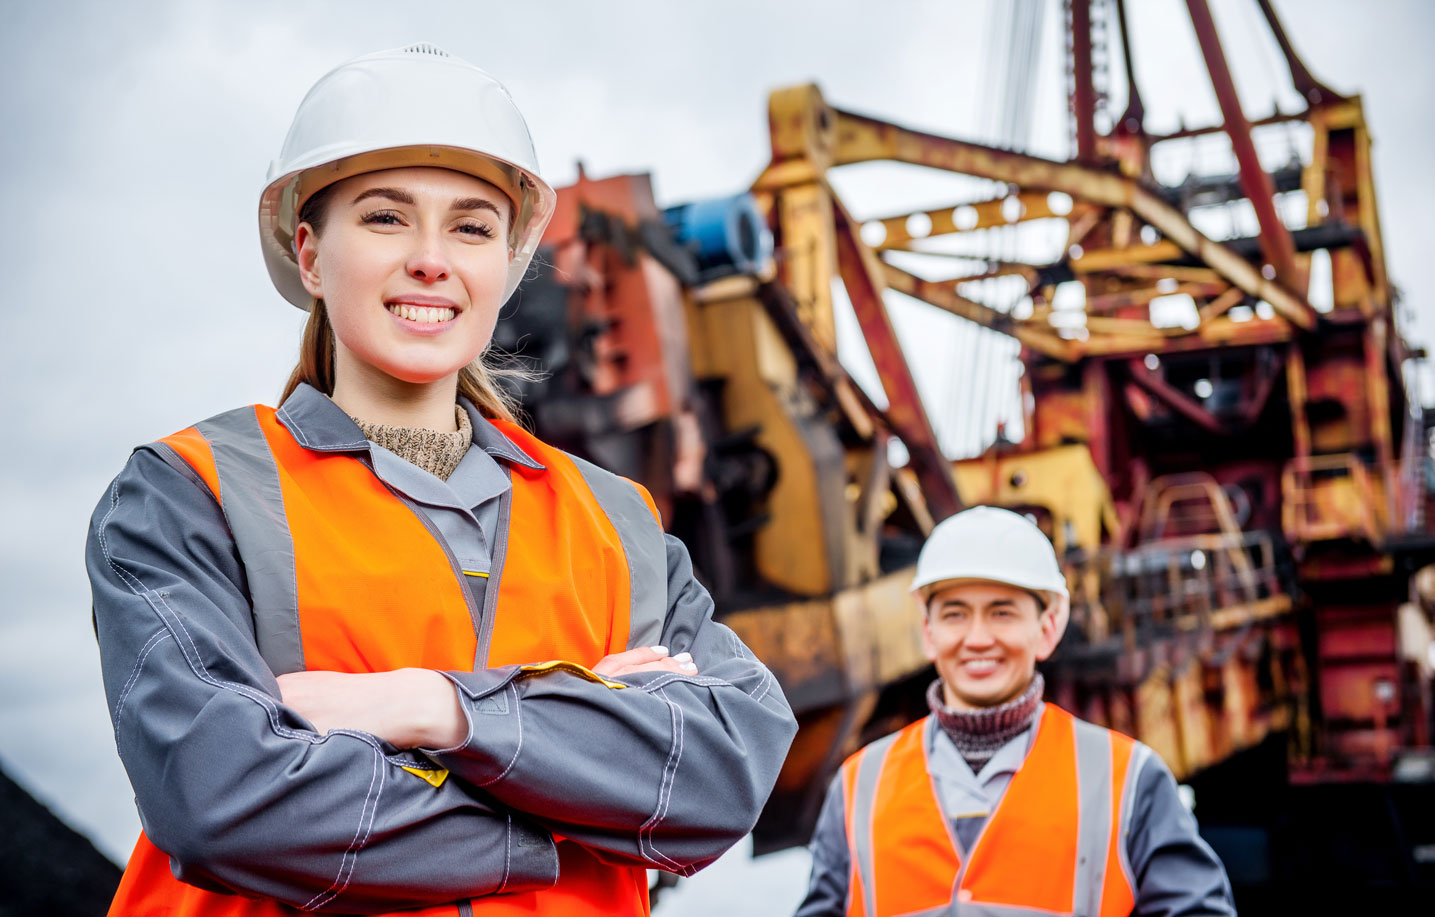 oil and gas industry workers at an oil rig